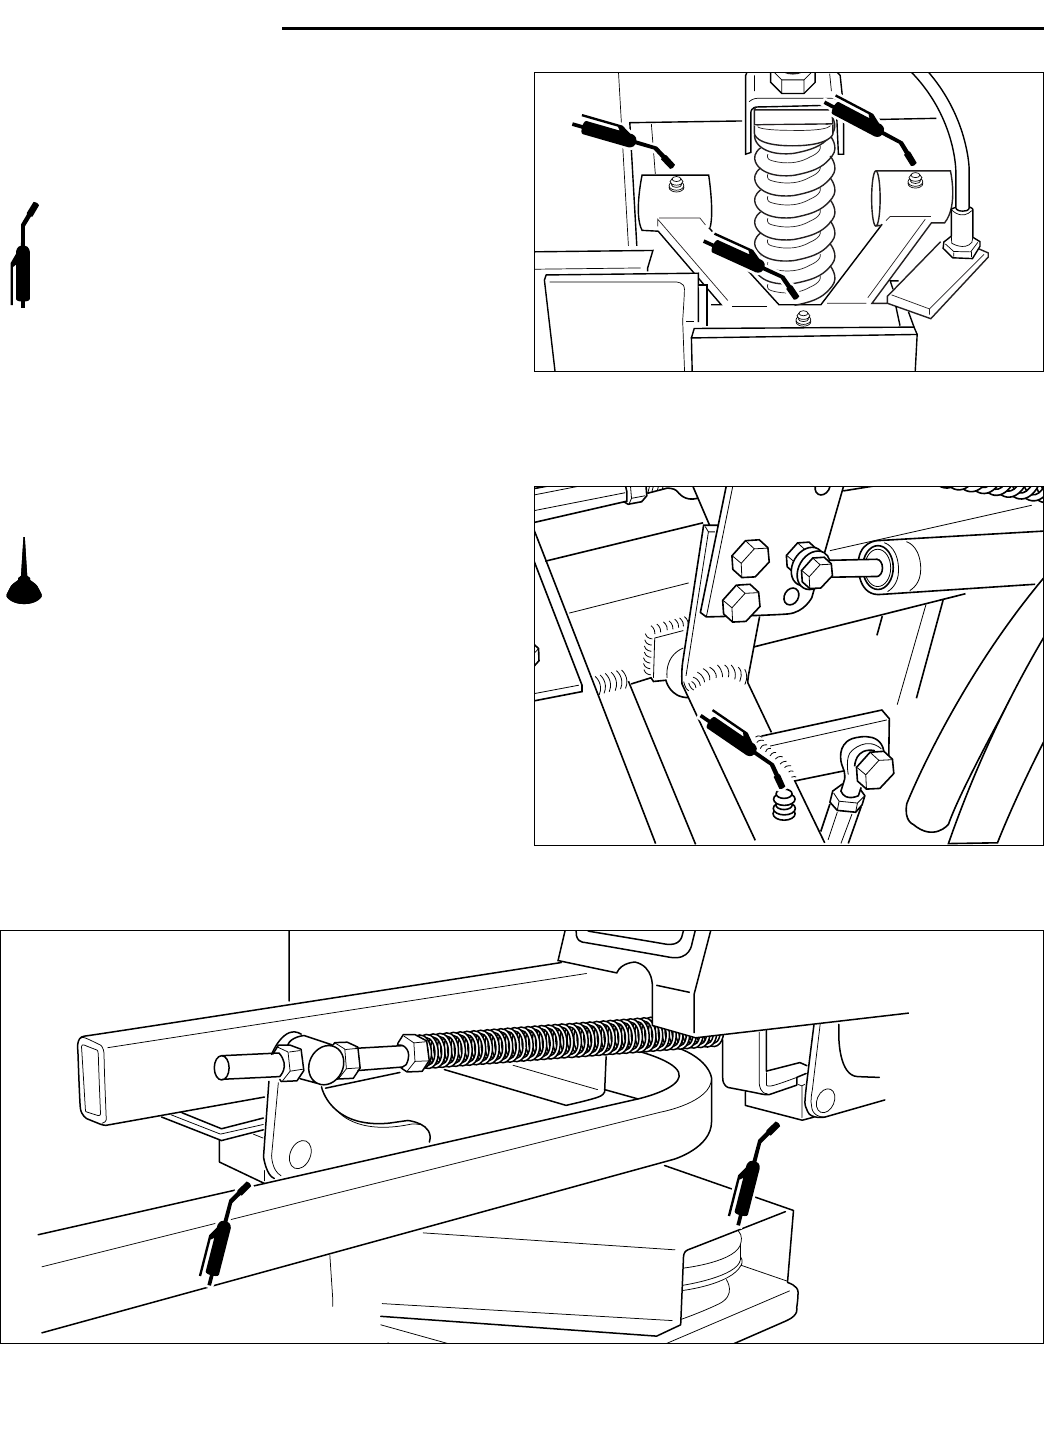 Page 18 of Ferris Industries Lawn Mower ISZKAV23/61 User